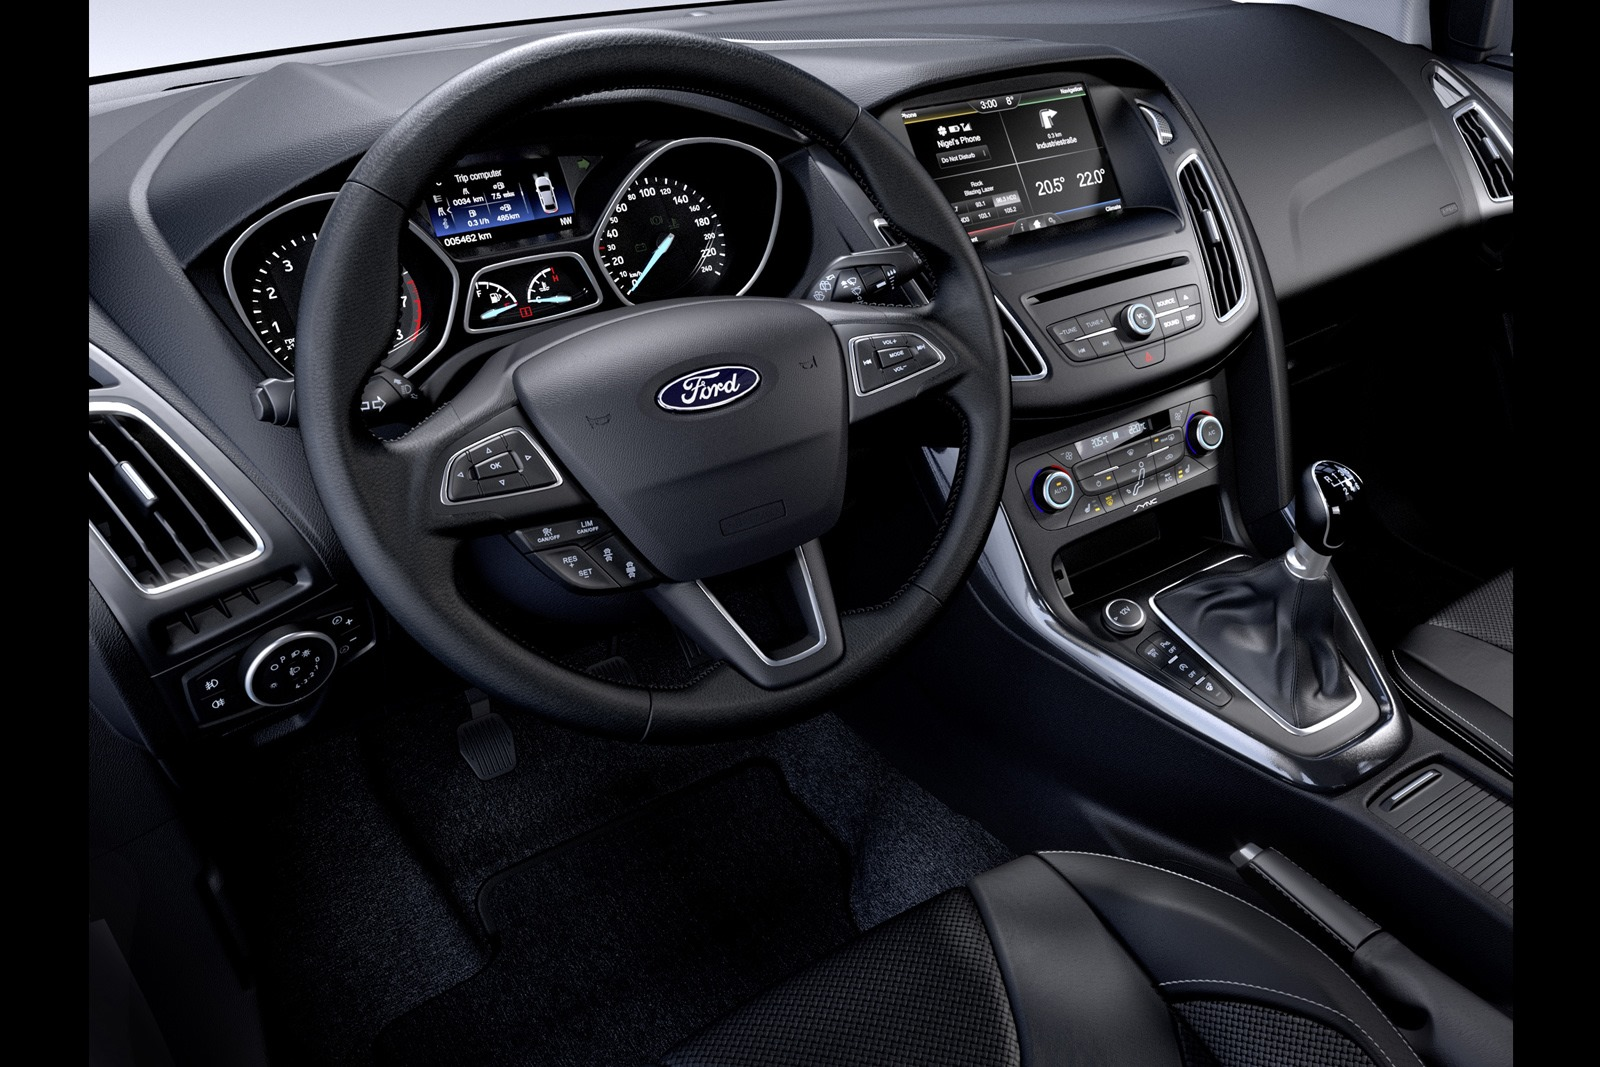 astonishing-design-of-the-black-dash-ideas-added-with-black-steering-wheels-as-the-ford-focus-facelift-2015-interior